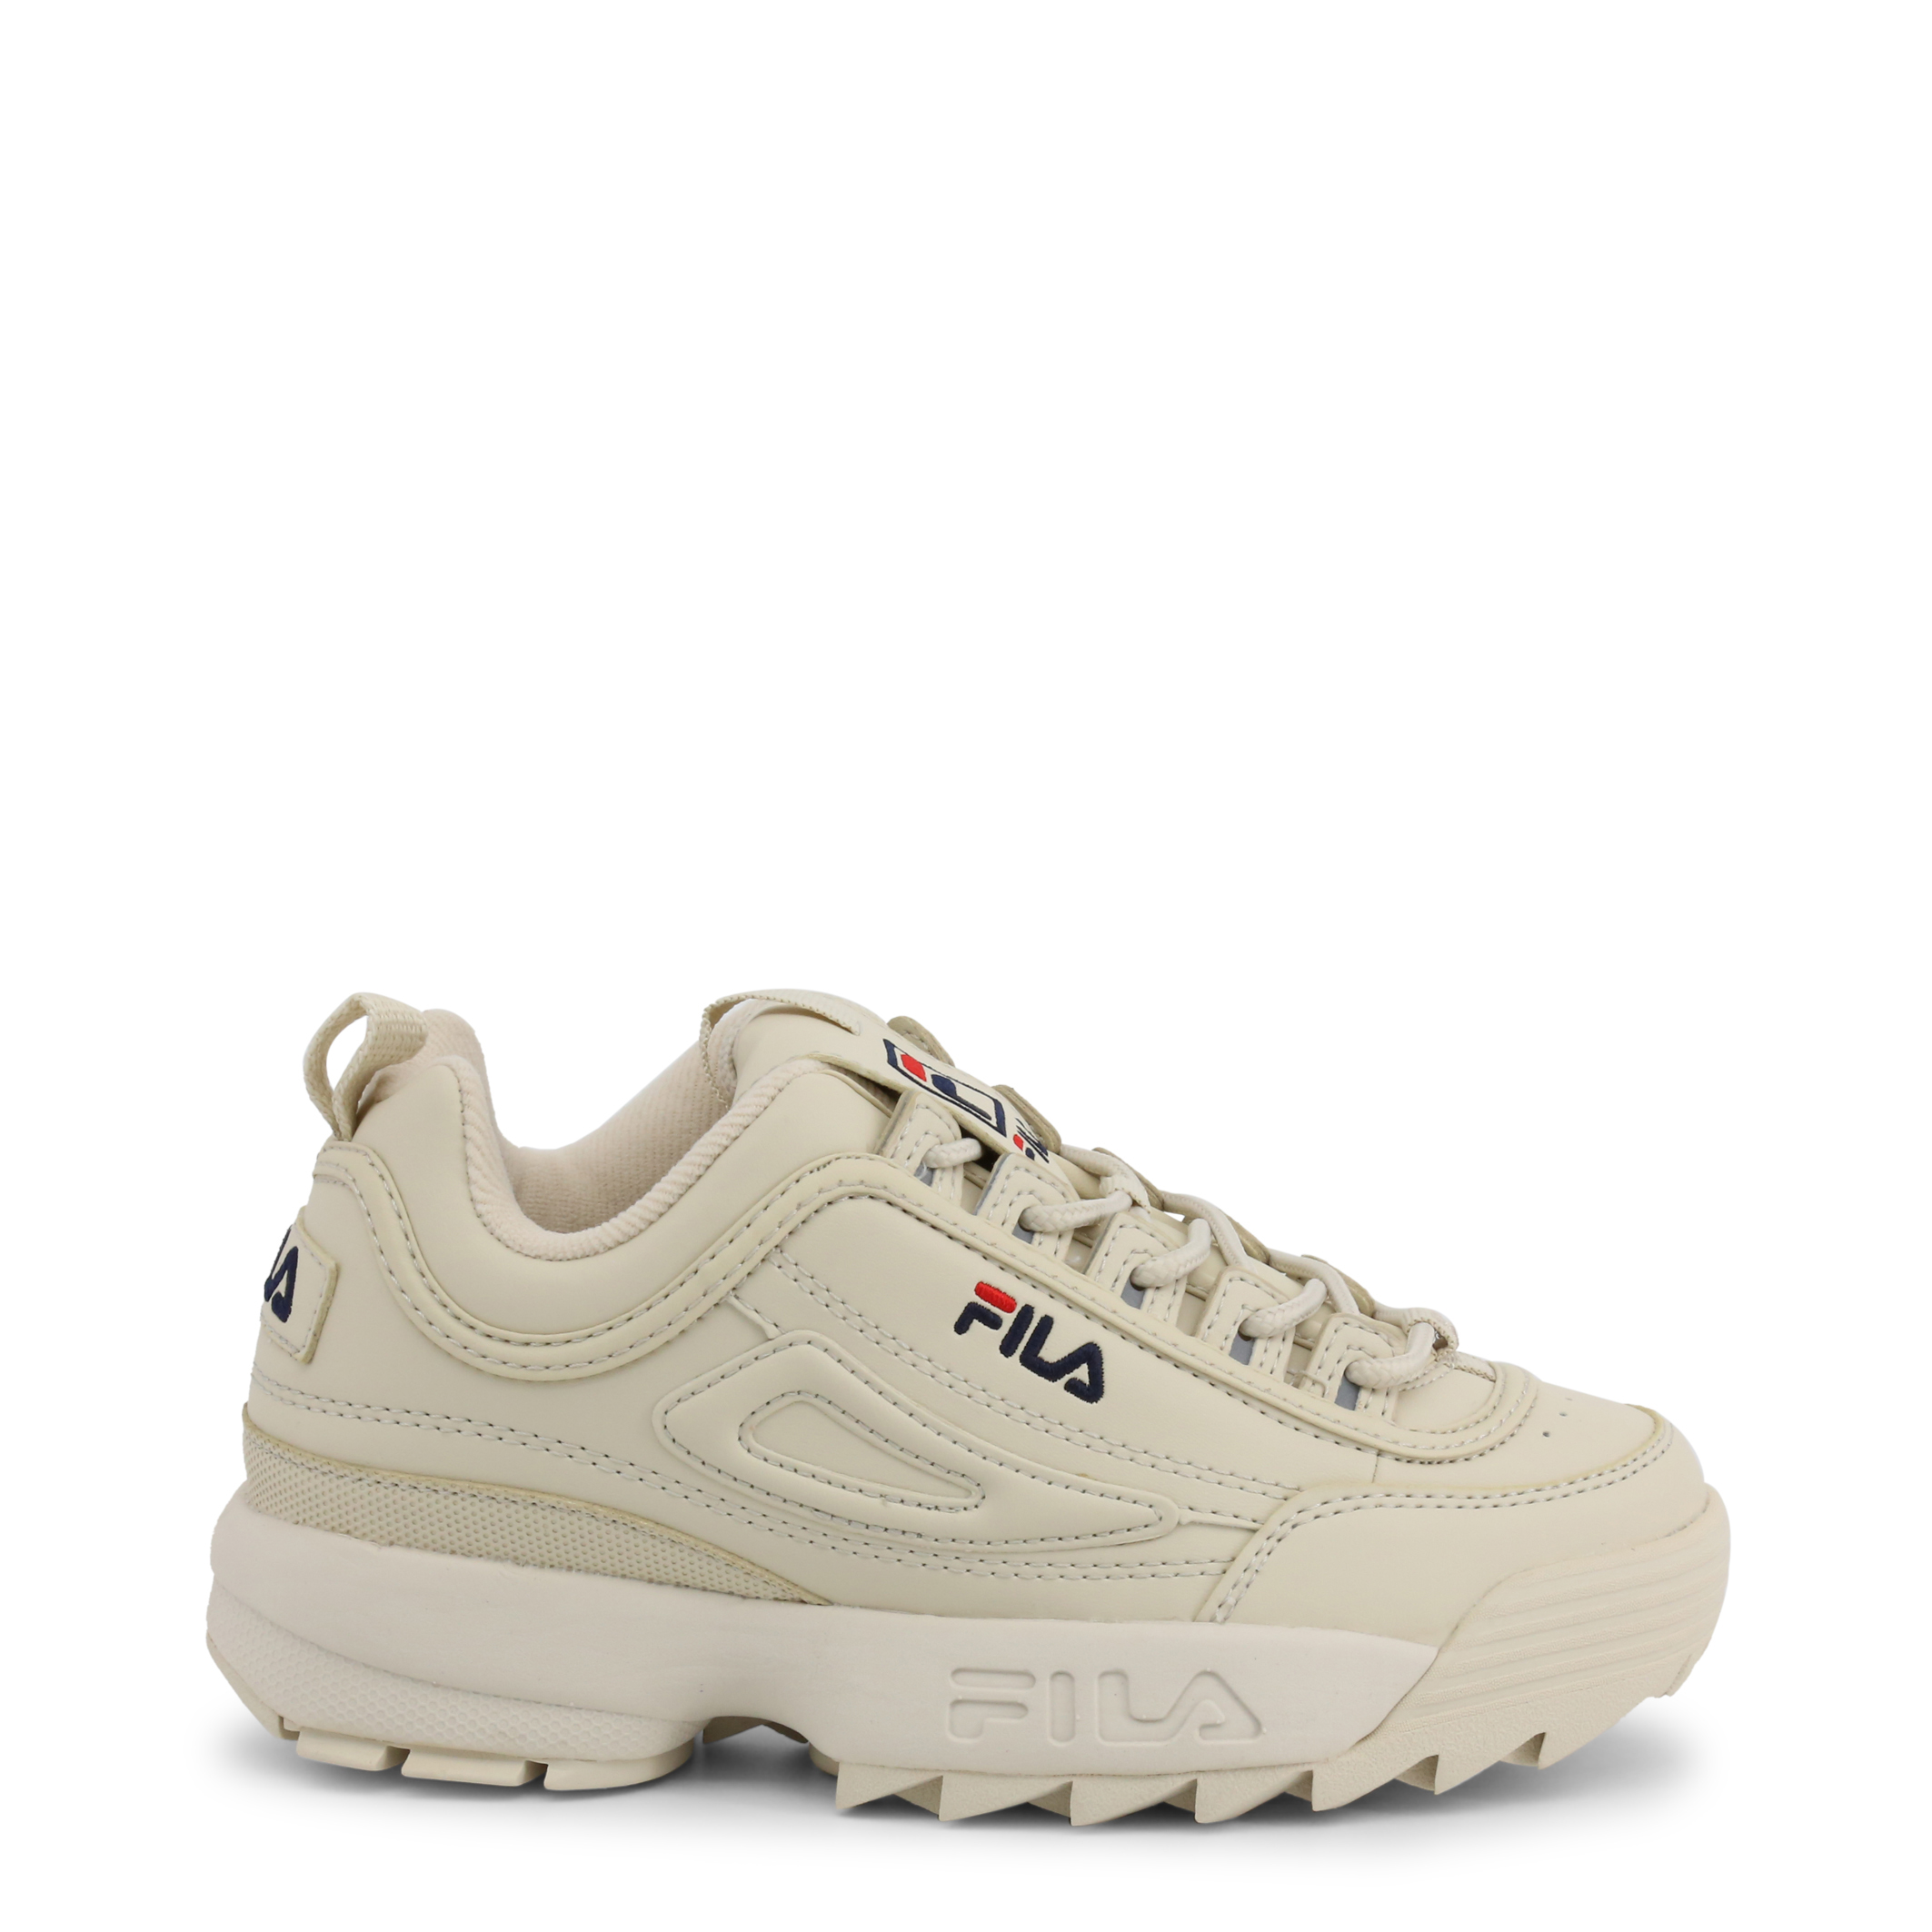 Baskets / Sneakers  Fila DISRUPTOR-LOW_1010302 white